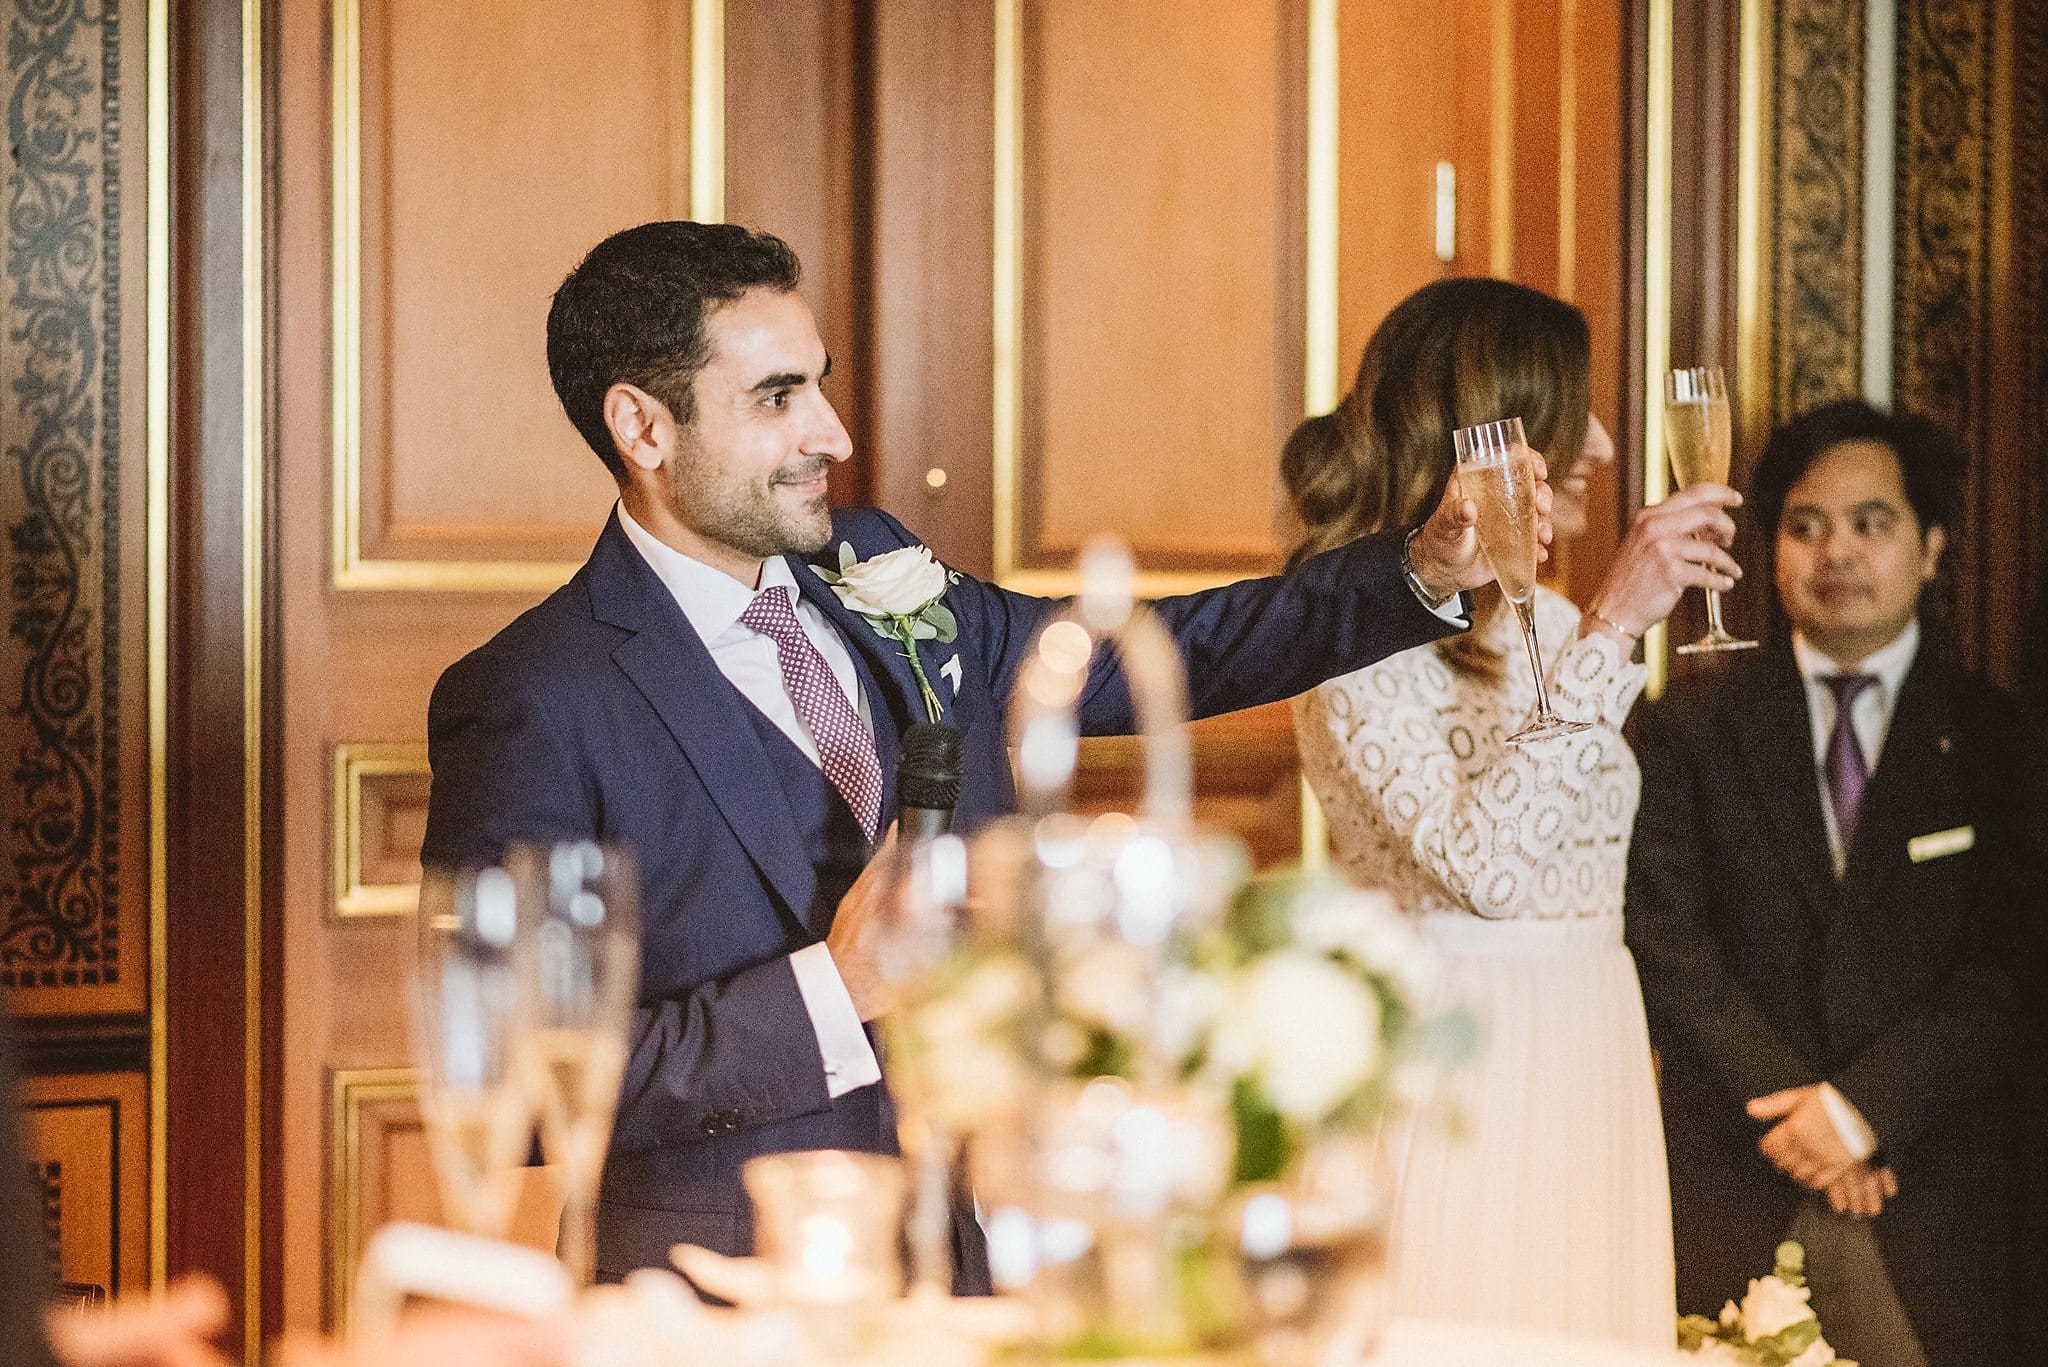 Bride and groom raise a glass during the speeches at their Lanesborough wedding